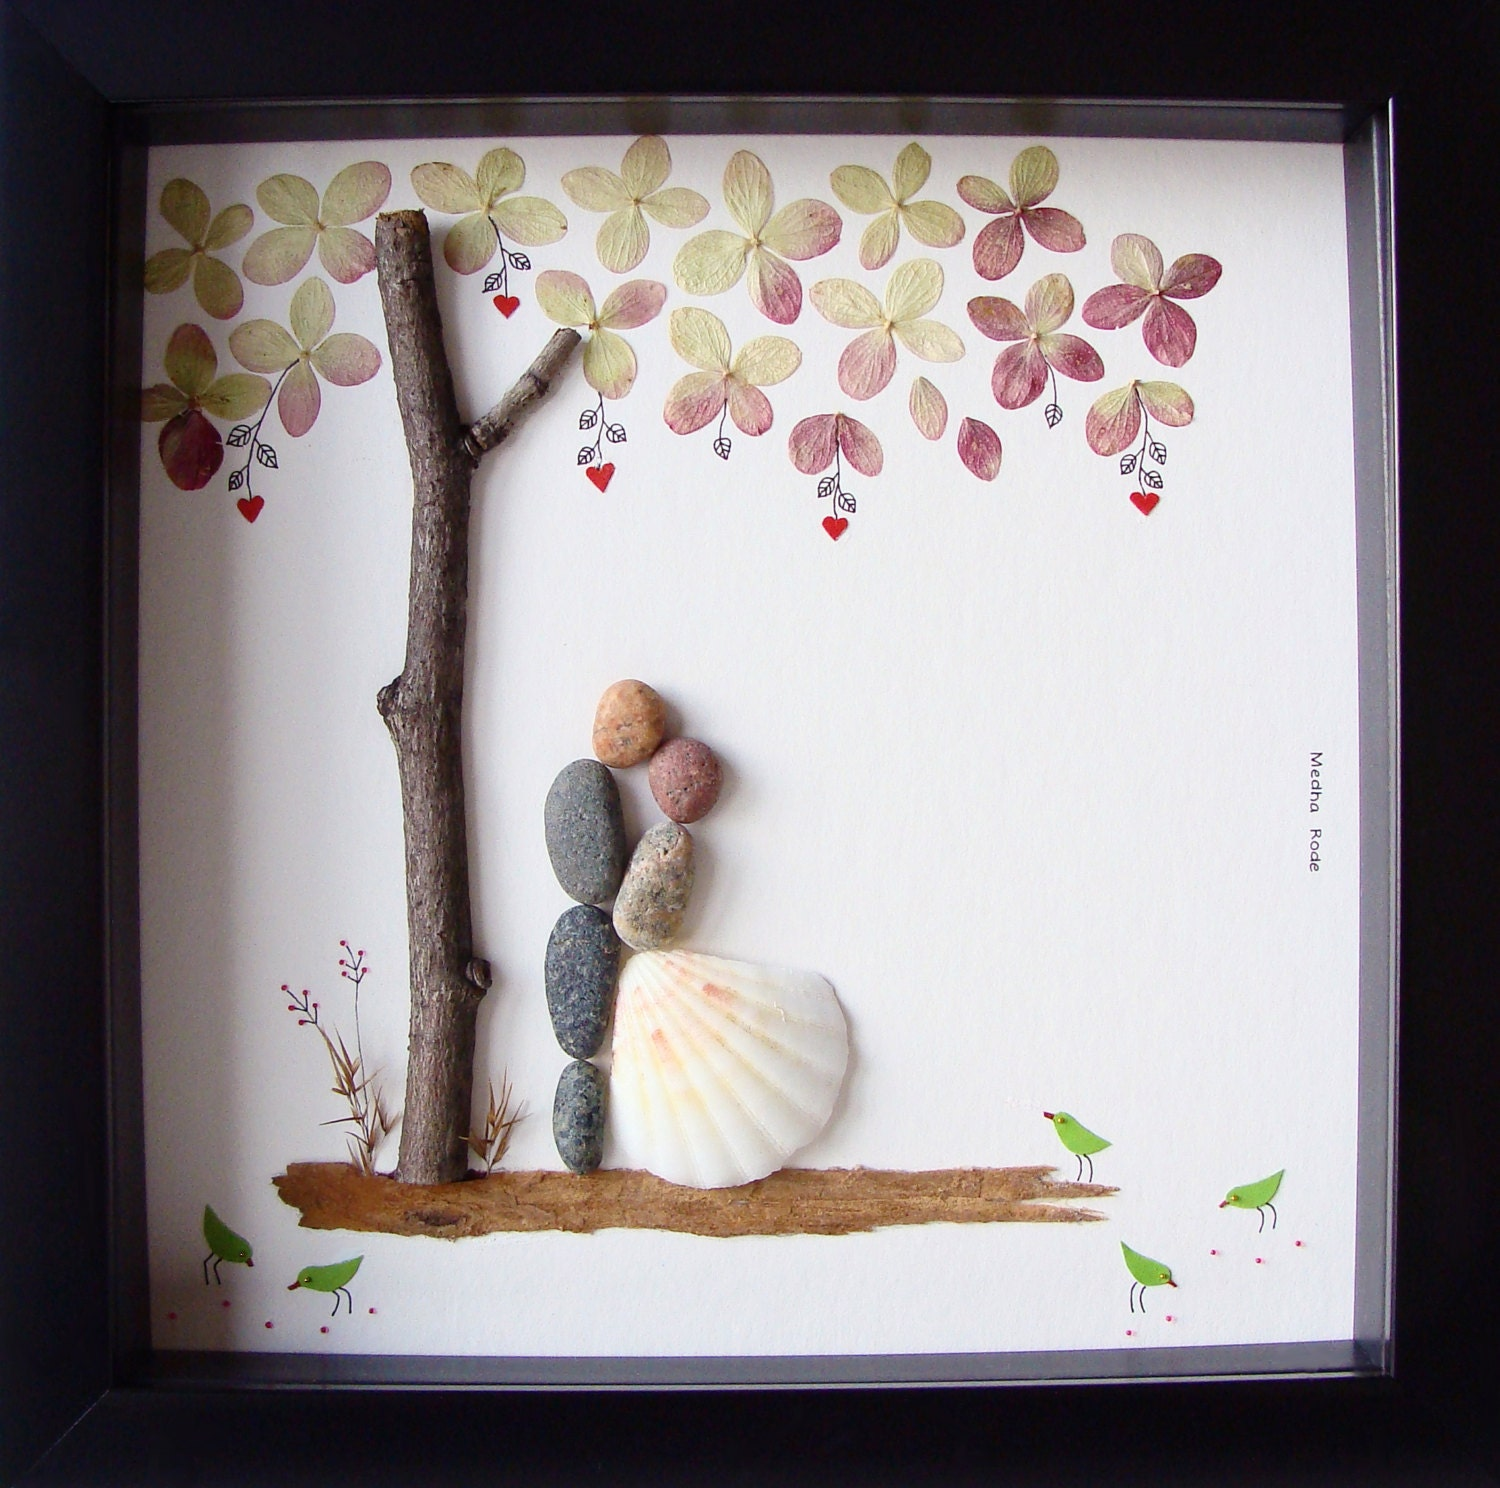 Ideas For Wedding Gifts: Unique Wedding Gift For Couple Wedding Pebble Art By MedhaRode